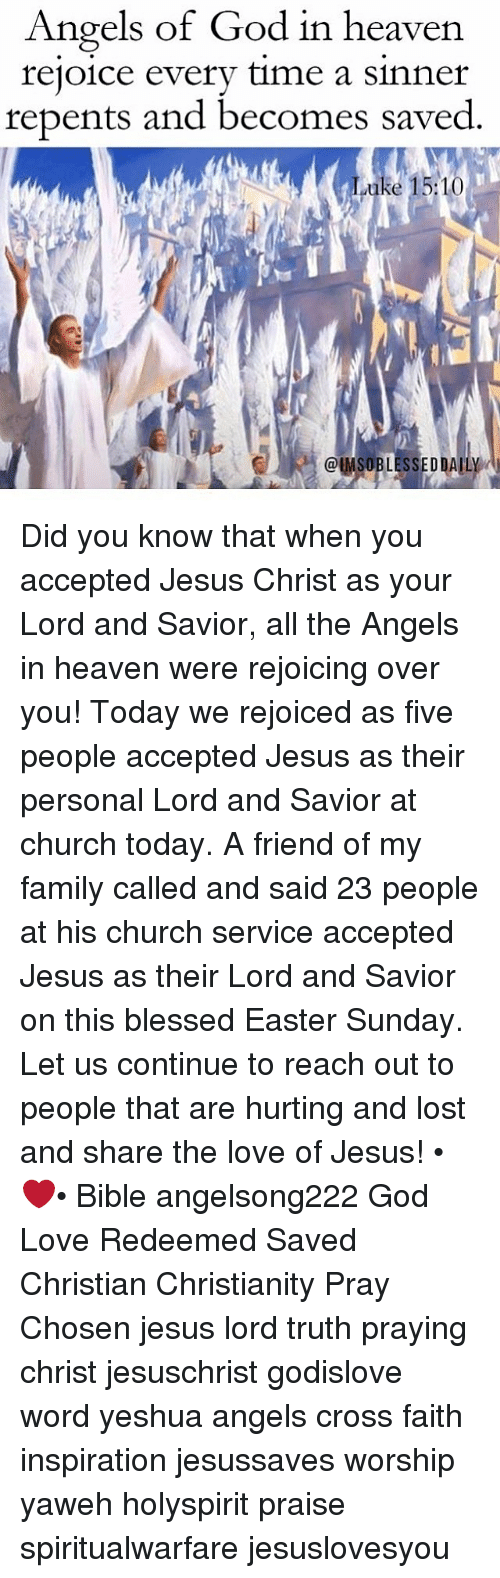 Blessed, Church, and Easter: Angels of God in heaven.  rejoice every time a Sinner  repents and becomes saved  uke 15:1  ClMSOBLESSED DAILY Did you know that when you accepted Jesus Christ as your Lord and Savior, all the Angels in heaven were rejoicing over you! Today we rejoiced as five people accepted Jesus as their personal Lord and Savior at church today. A friend of my family called and said 23 people at his church service accepted Jesus as their Lord and Savior on this blessed Easter Sunday. Let us continue to reach out to people that are hurting and lost and share the love of Jesus! •❤️• Bible angelsong222 God Love Redeemed Saved Christian Christianity Pray Chosen jesus lord truth praying christ jesuschrist godislove word yeshua angels cross faith inspiration jesussaves worship yaweh holyspirit praise spiritualwarfare jesuslovesyou